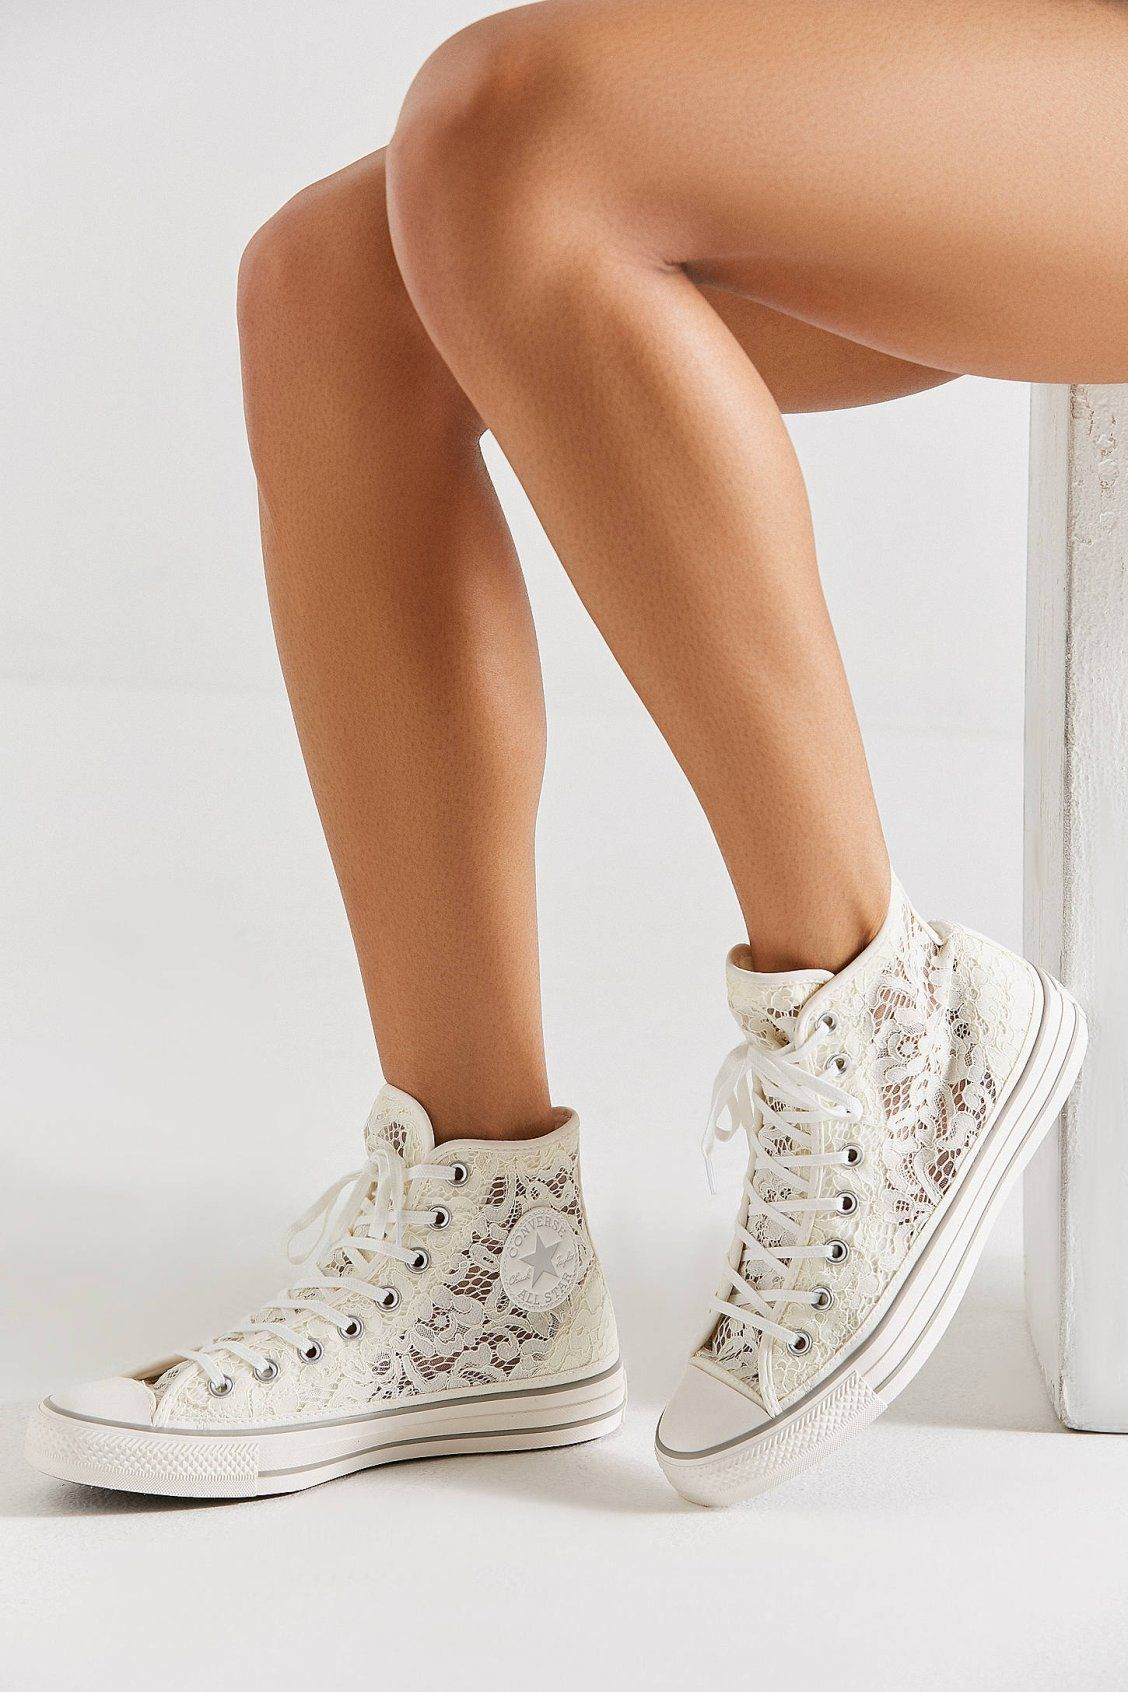 Lace Top High Chuck Converse SneakerShoes Taylor 54jRqLA3